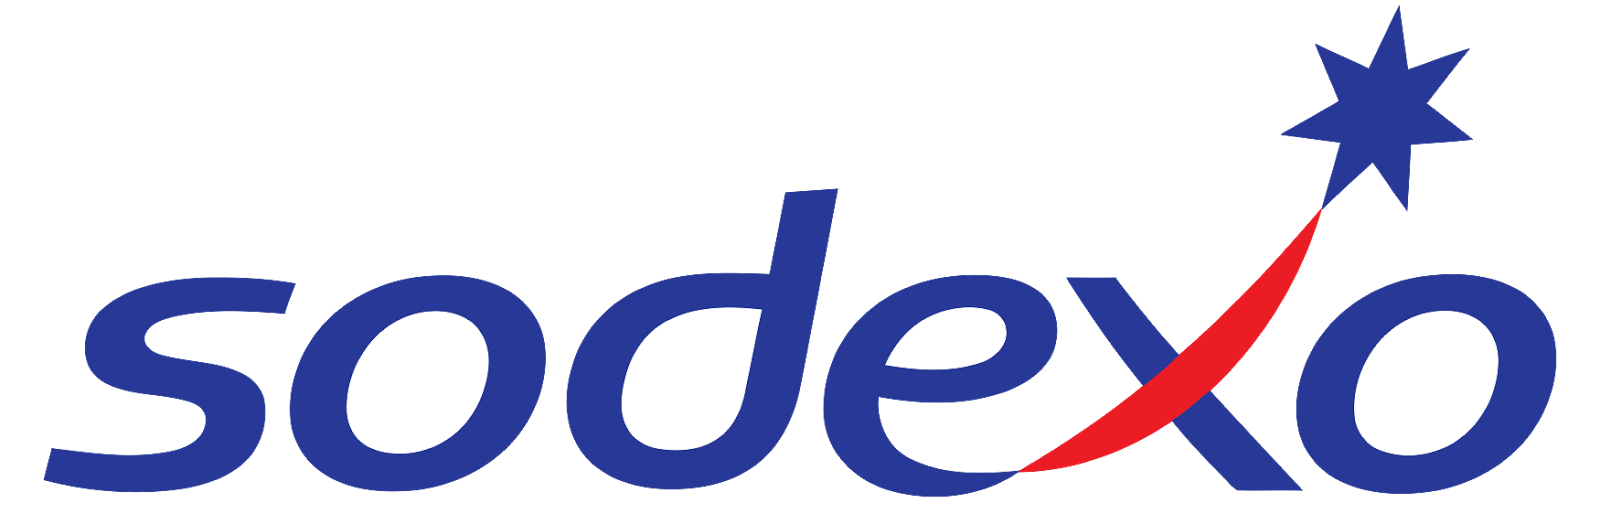 Putting Green Sponsor - Sodexo - Logo